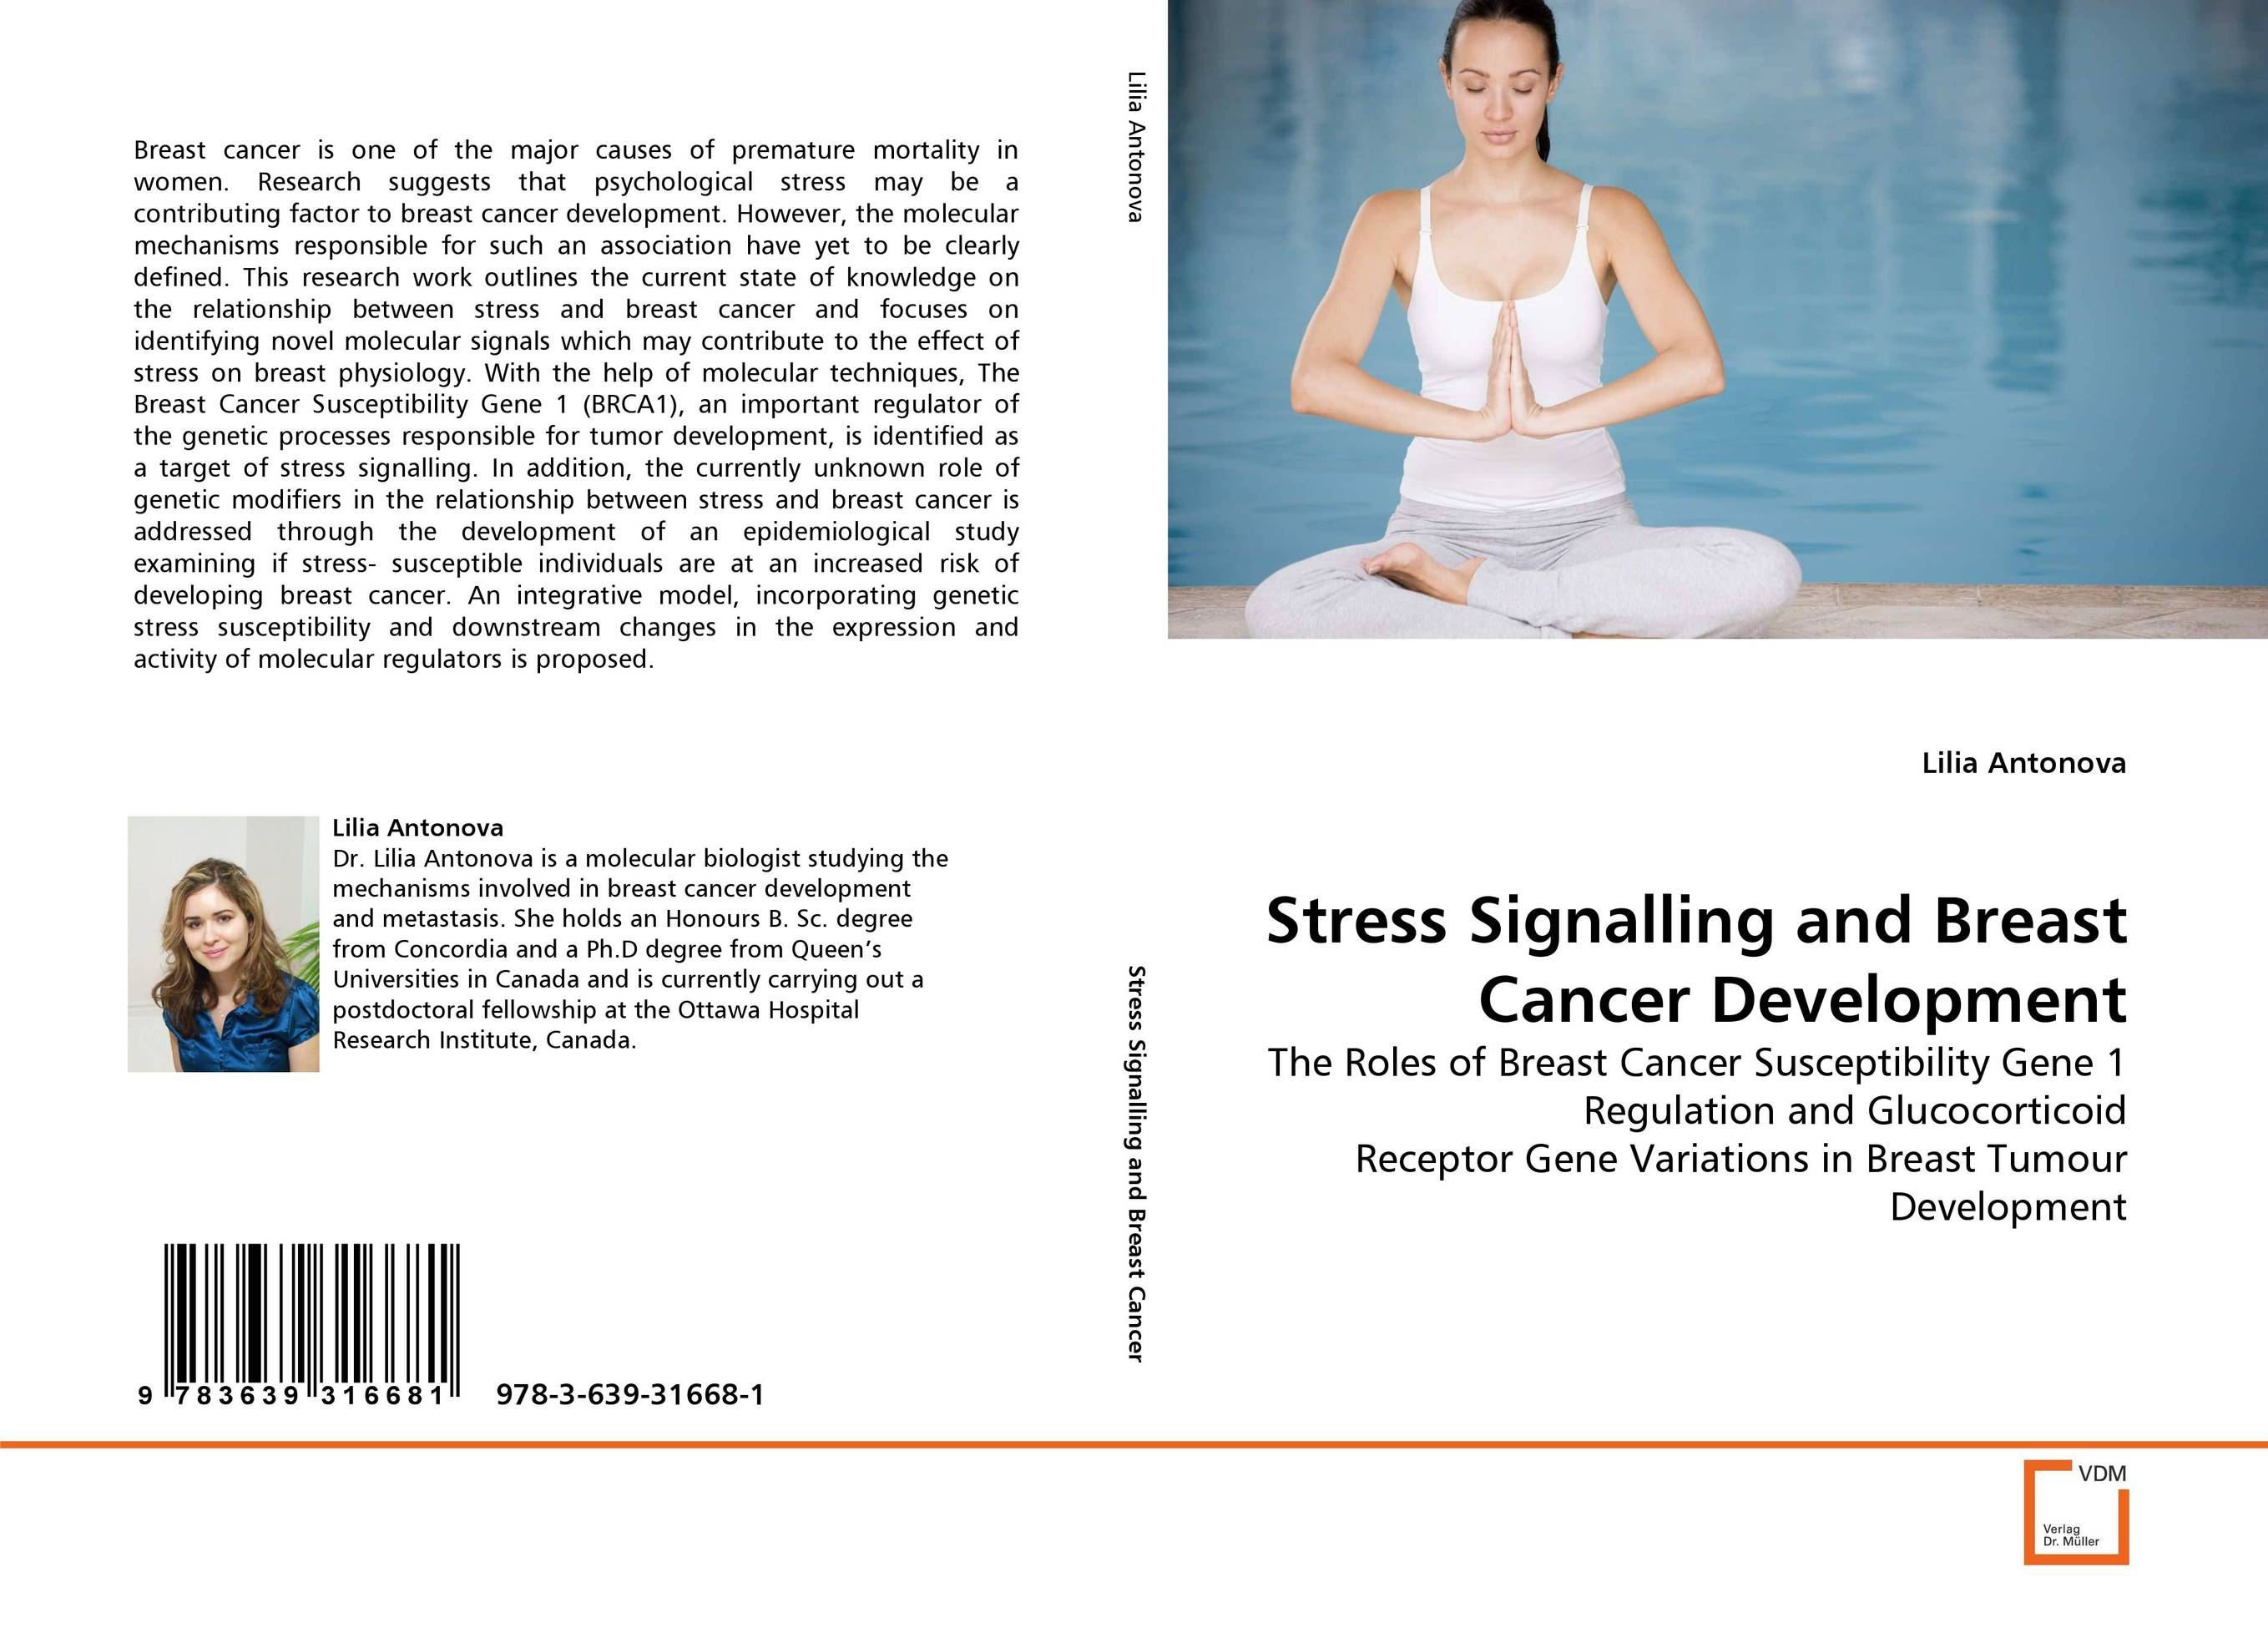 breast cancer and stress Stress and breast cancer by kathy-ellen kups, rn in this series stress scares me i have always felt (and friends agree) that i handle stress well i serve a big god, so i tend to lean on my faith through trials and tribulation, or so i thought.